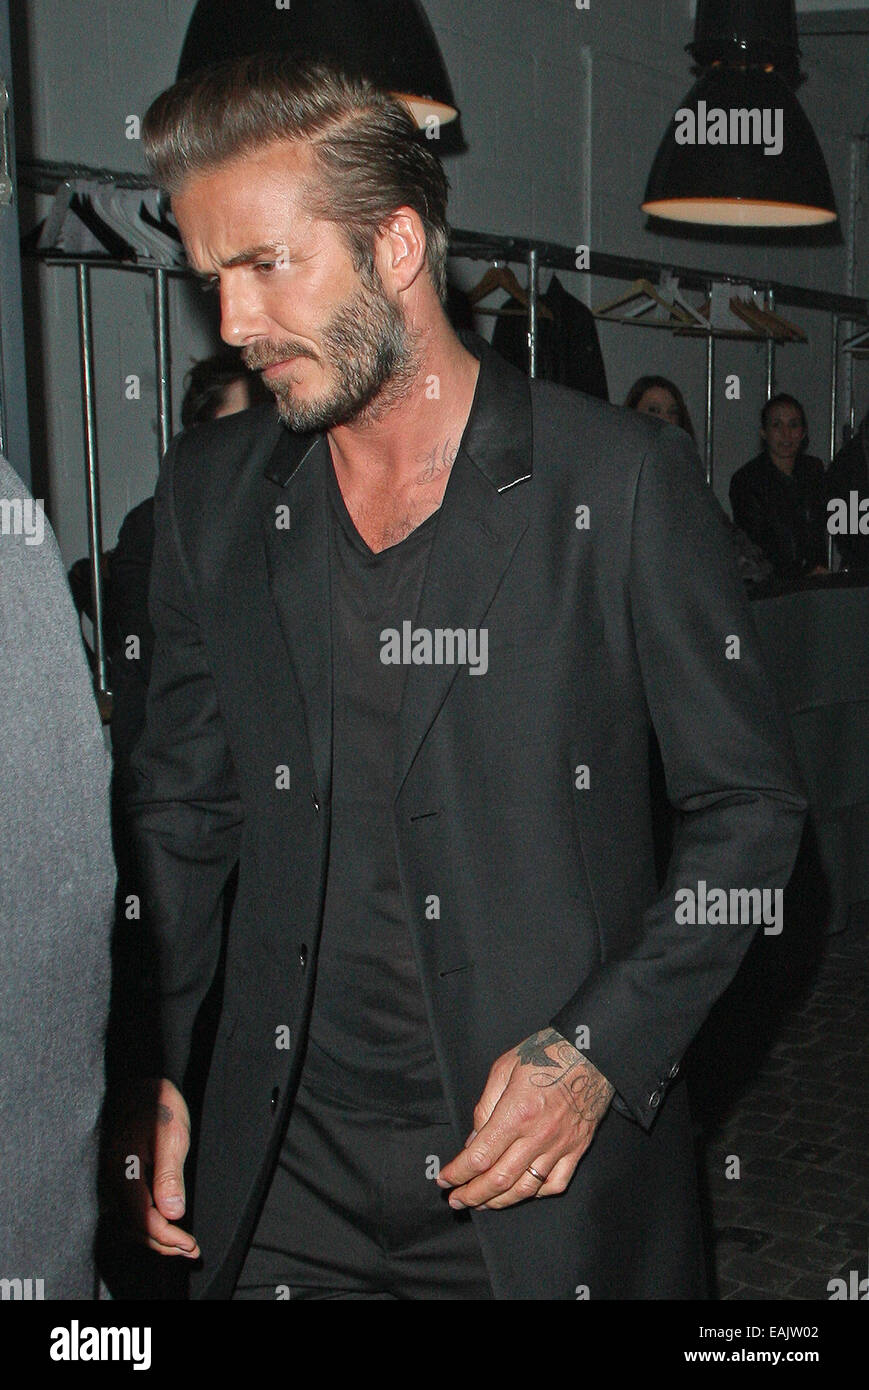 ddbf1f5e59 David Beckham H&M swimwear collection launch party at shoreditch house.  Ellie Gouilding, Niall Horan and Liam Payne were seen leaving the bash  along with ...